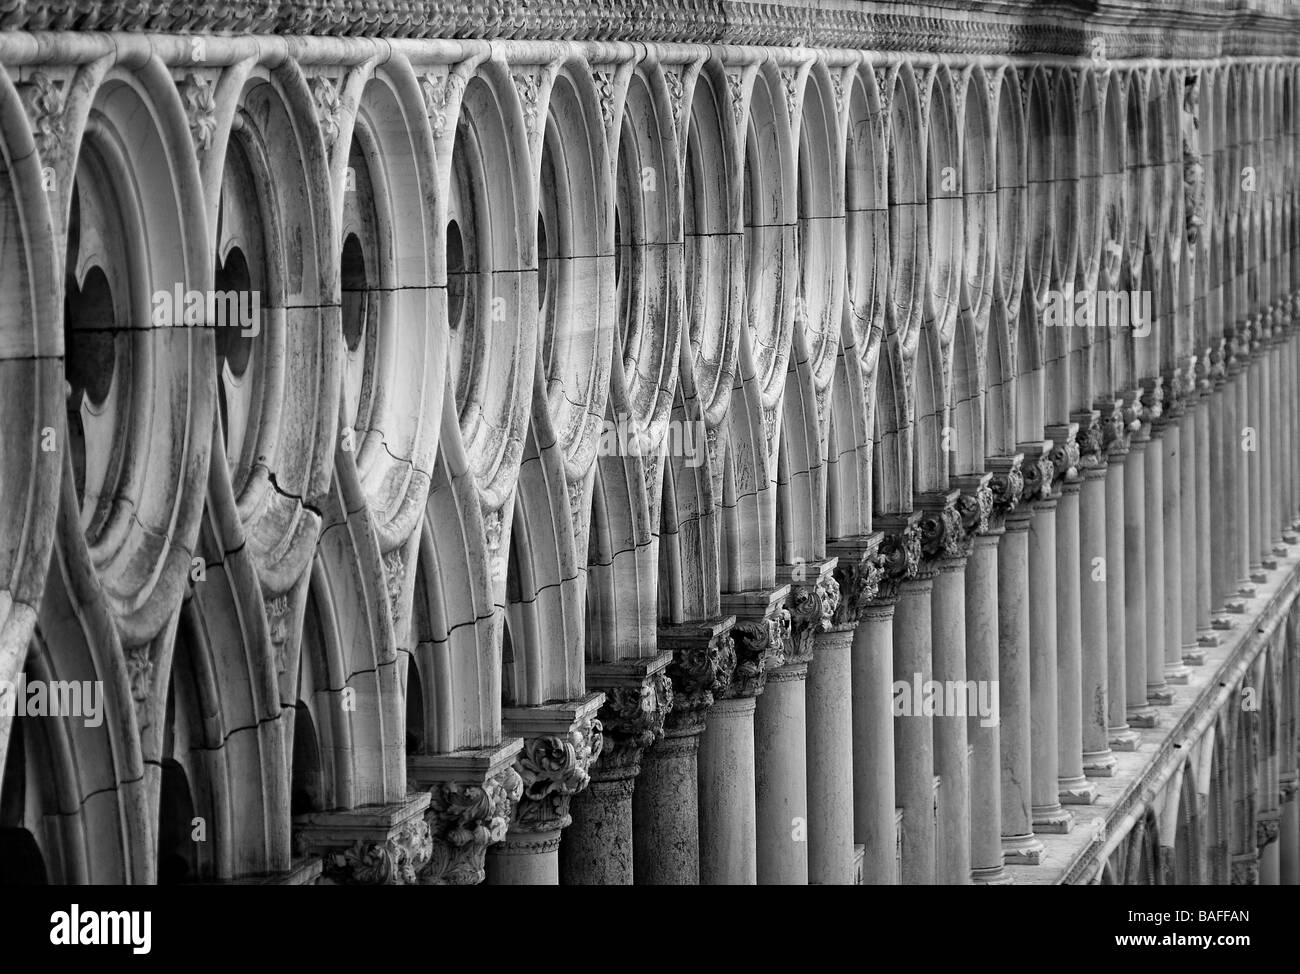 Venetian decorative columns and windows receeding into the distance with small depth-of-field. Venice Italy - Stock Image